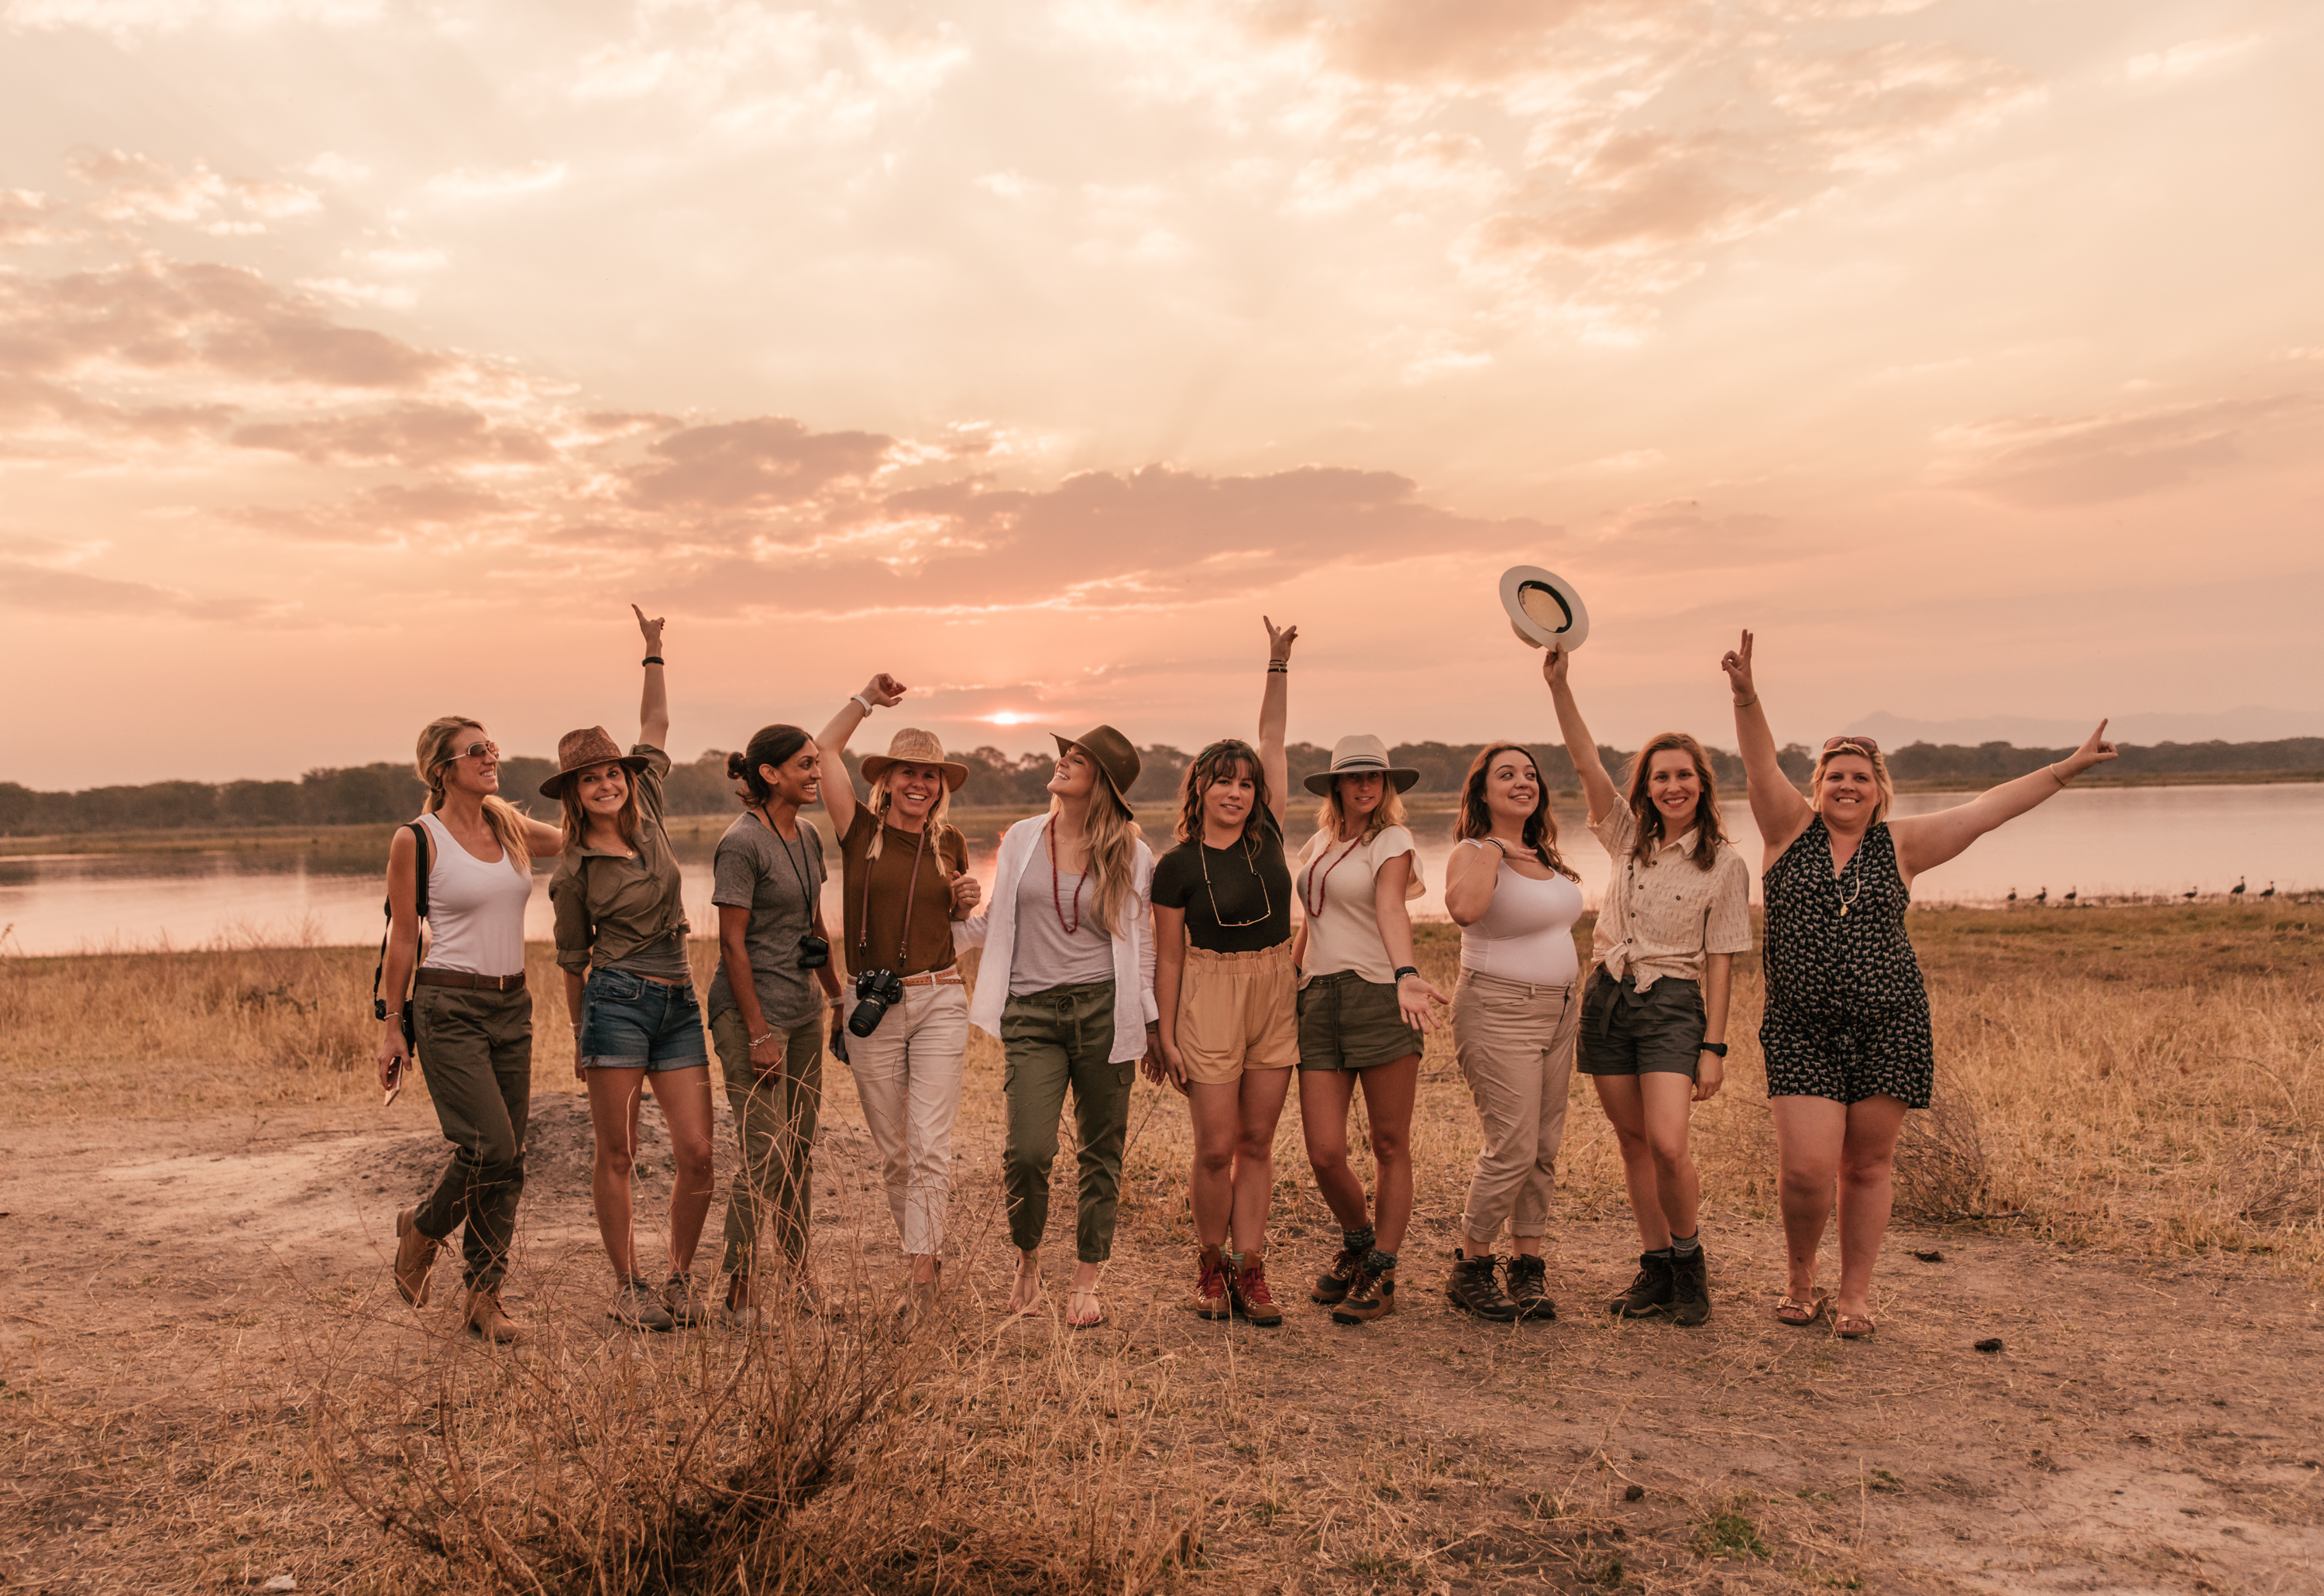 14 WAYS TO BE PART OF THE WE ARE TRAVEL GIRLS COMMUNITY